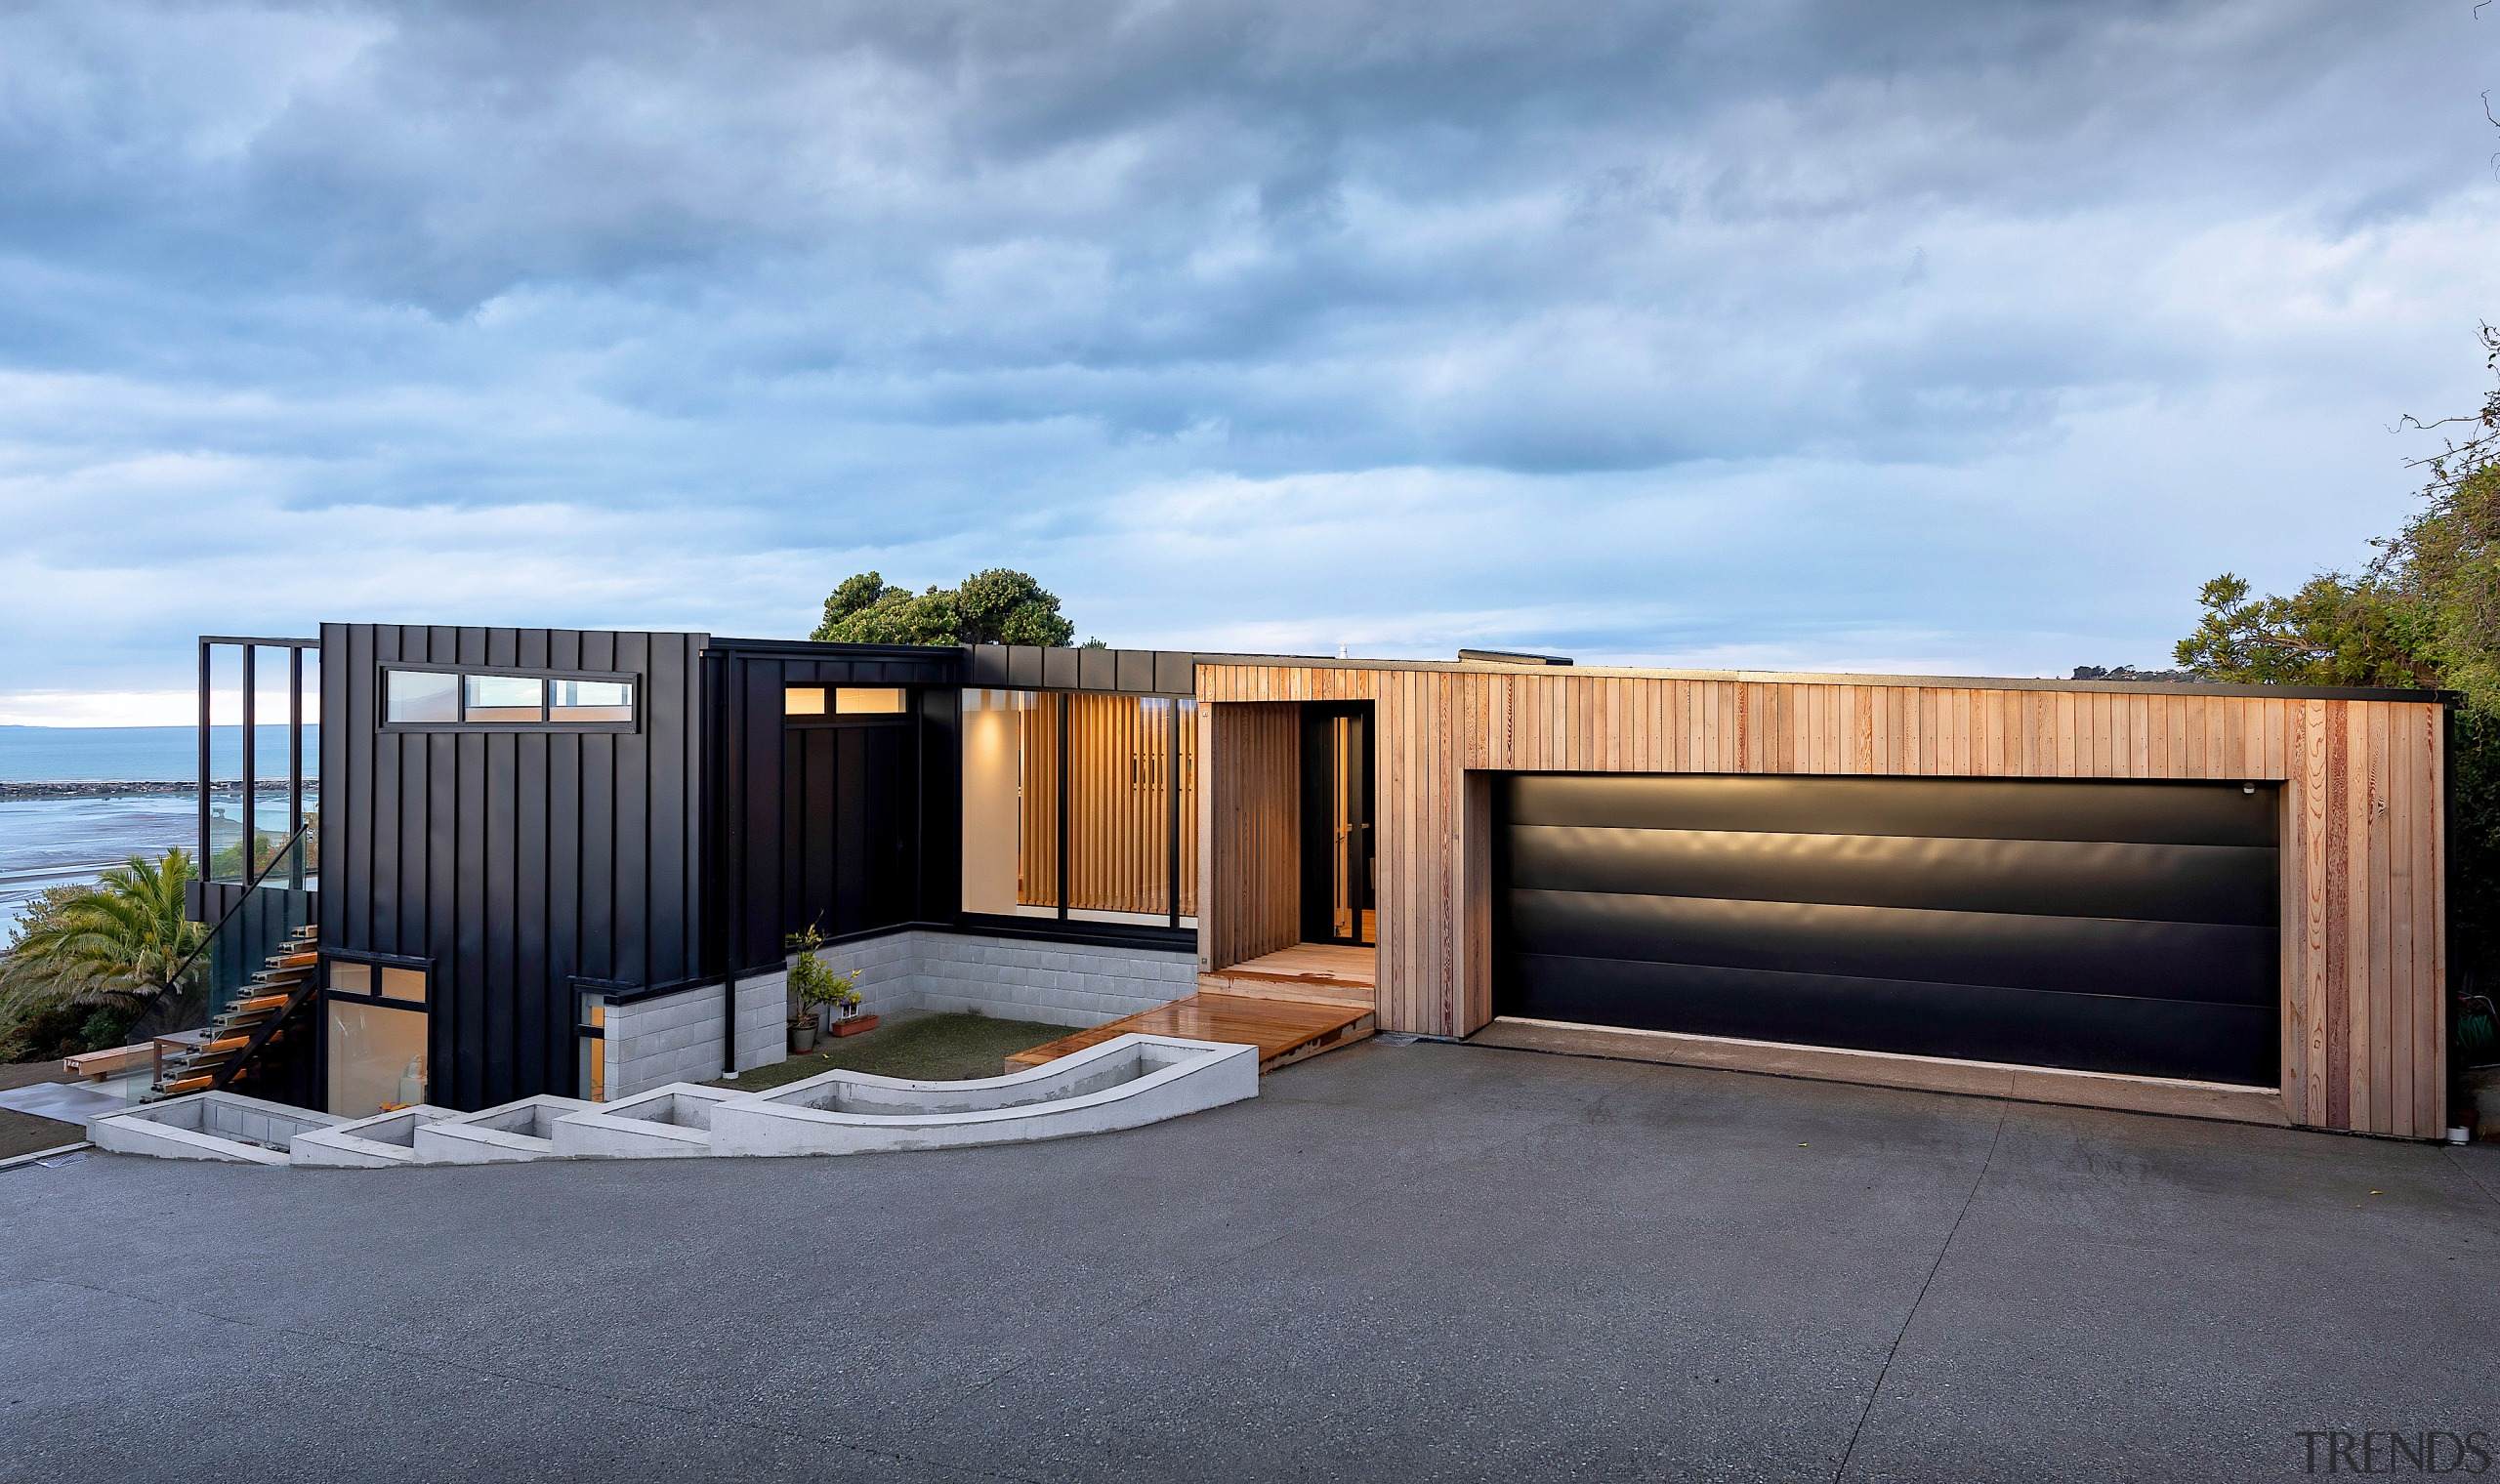 The sloping roof of this home follows the